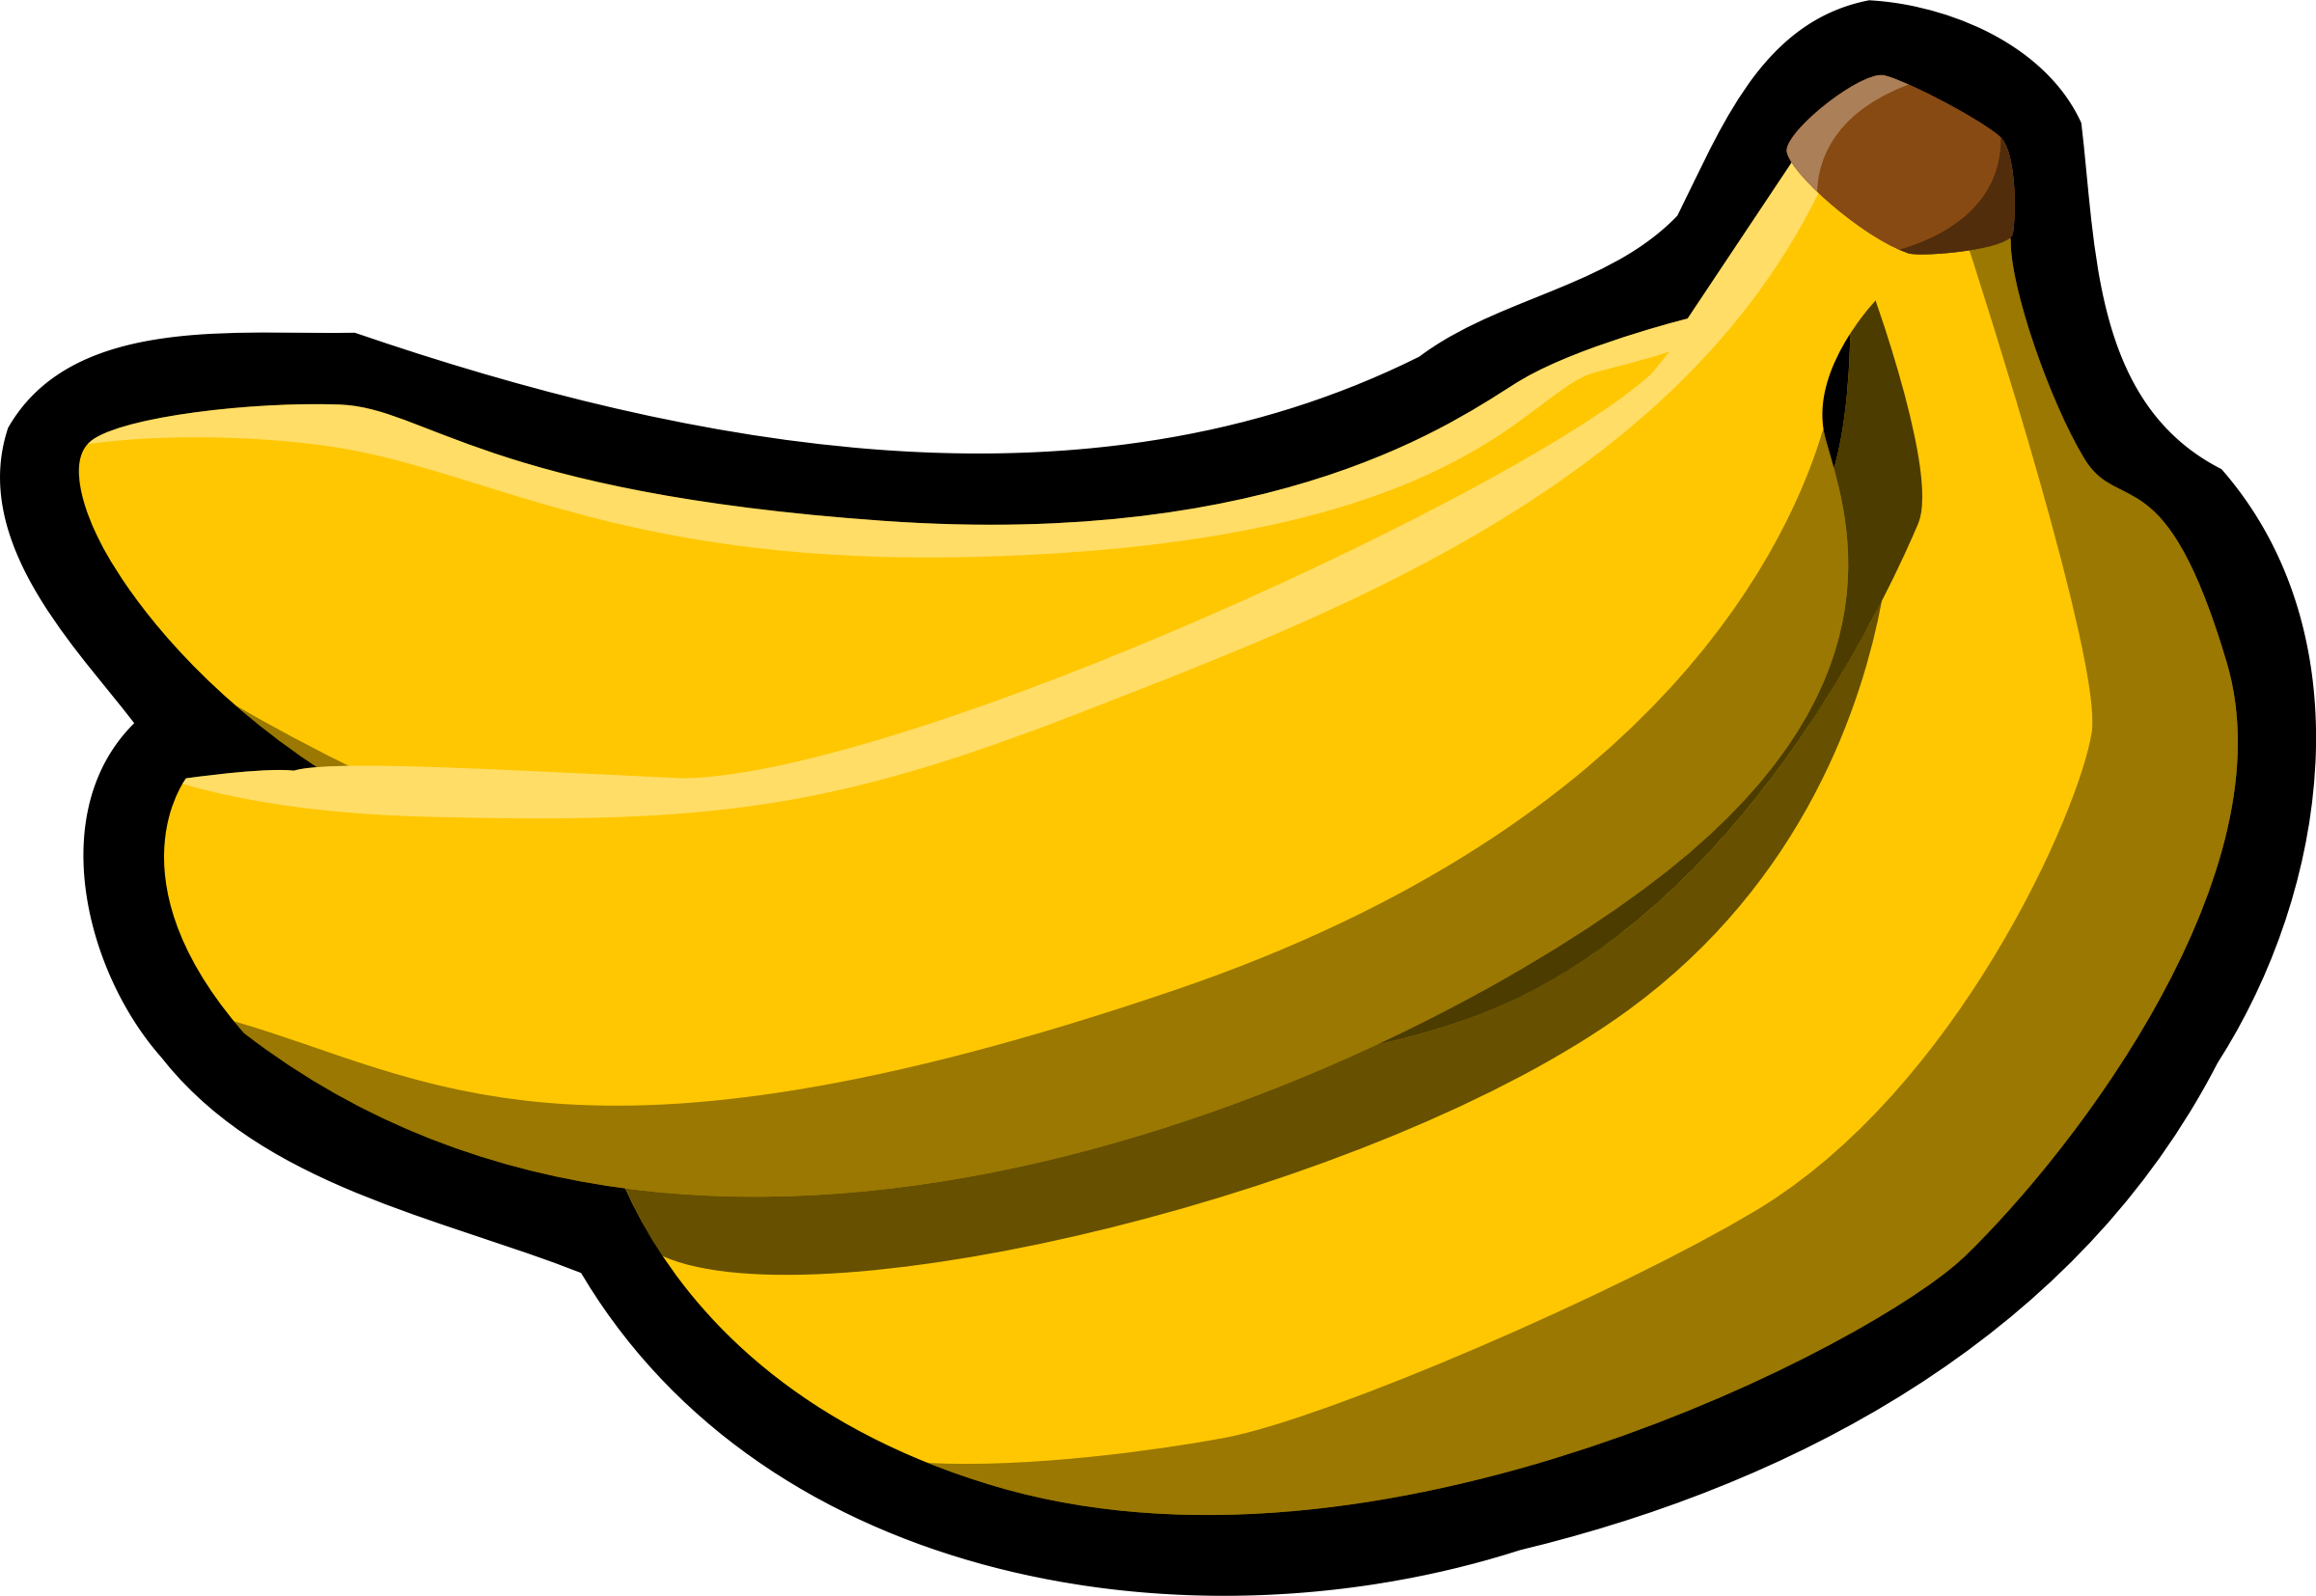 Bananas by arnelsx